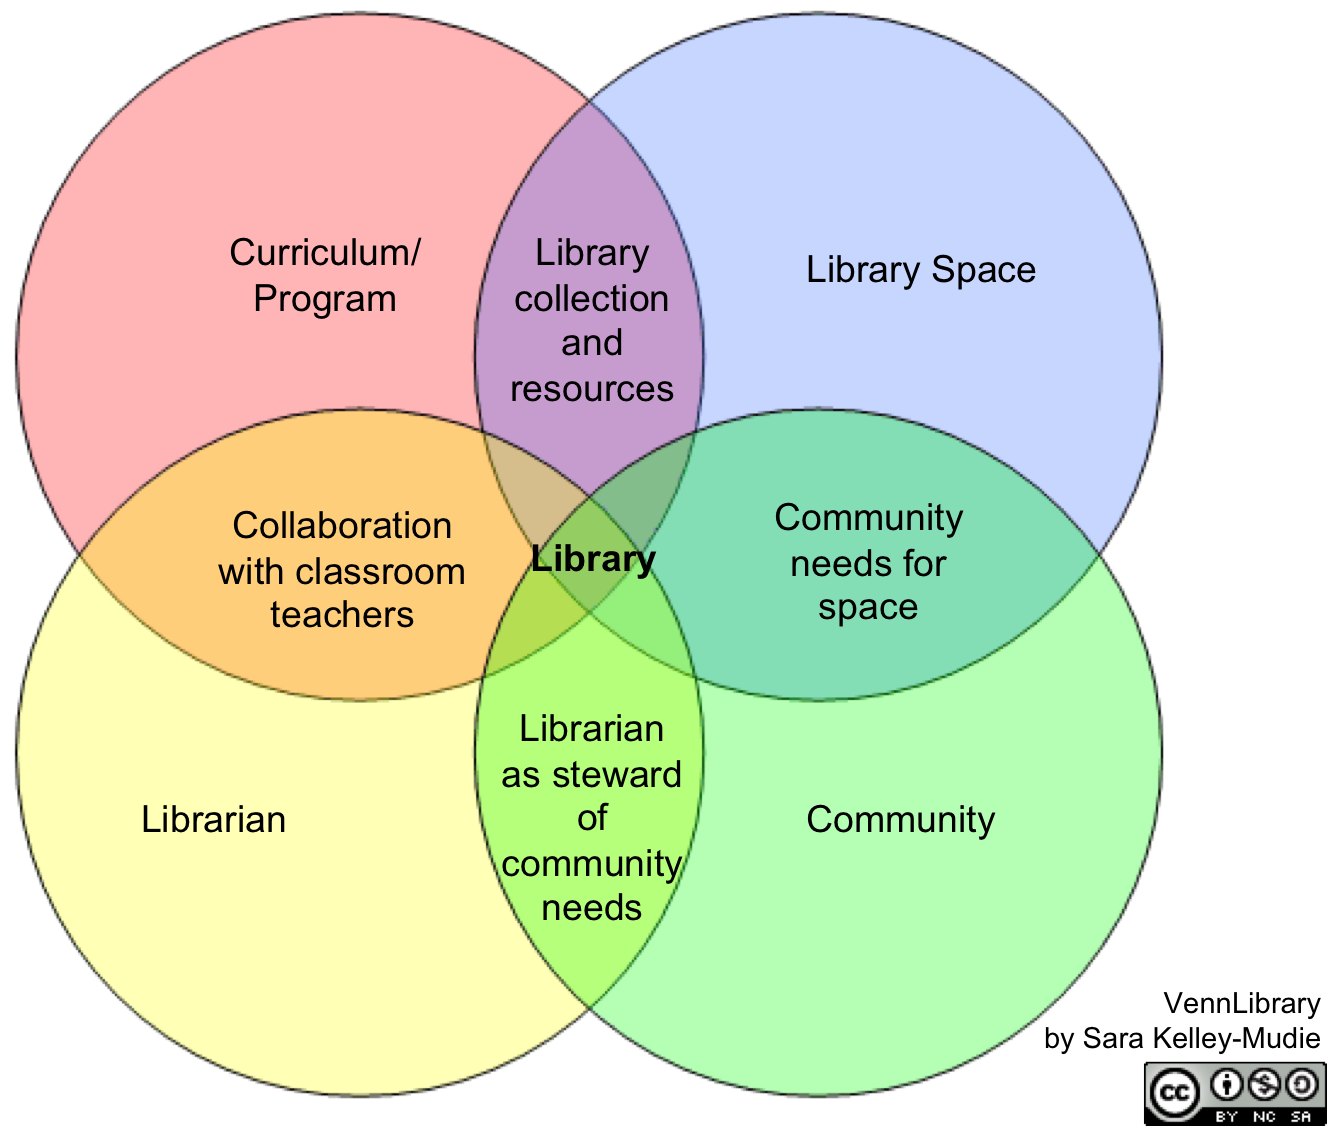 k m the librariani    m honestly sort of beside myself happy about this venn diagram  and if other school librarians like this  i hope they    ll share it   their colleagues